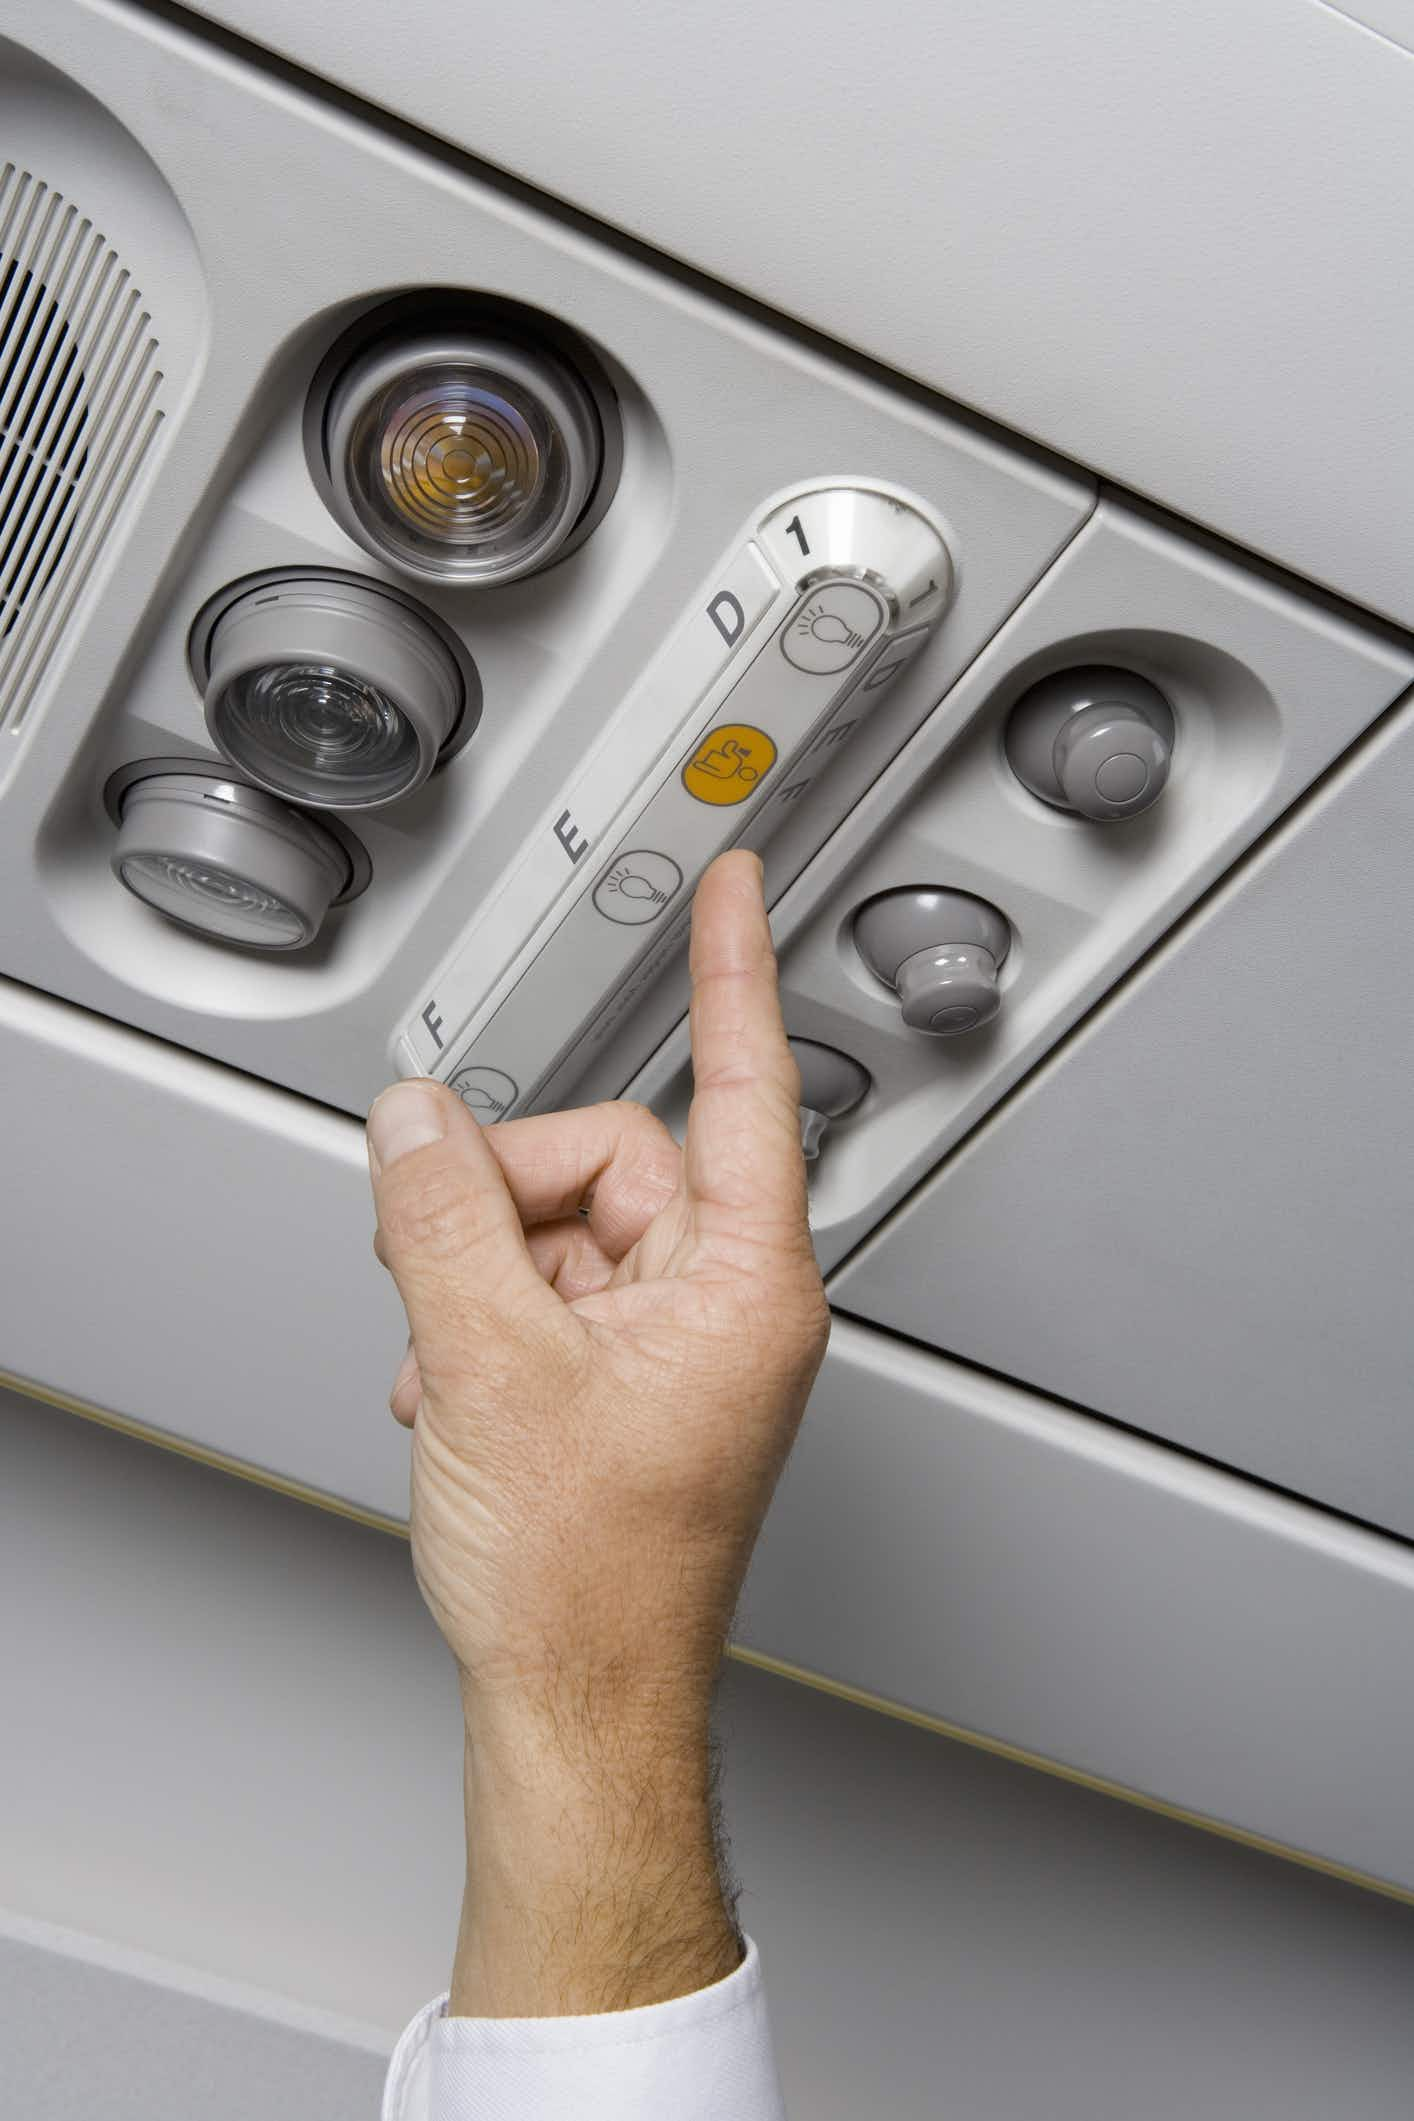 Plane Insider: when should you press that cabin crew call button?